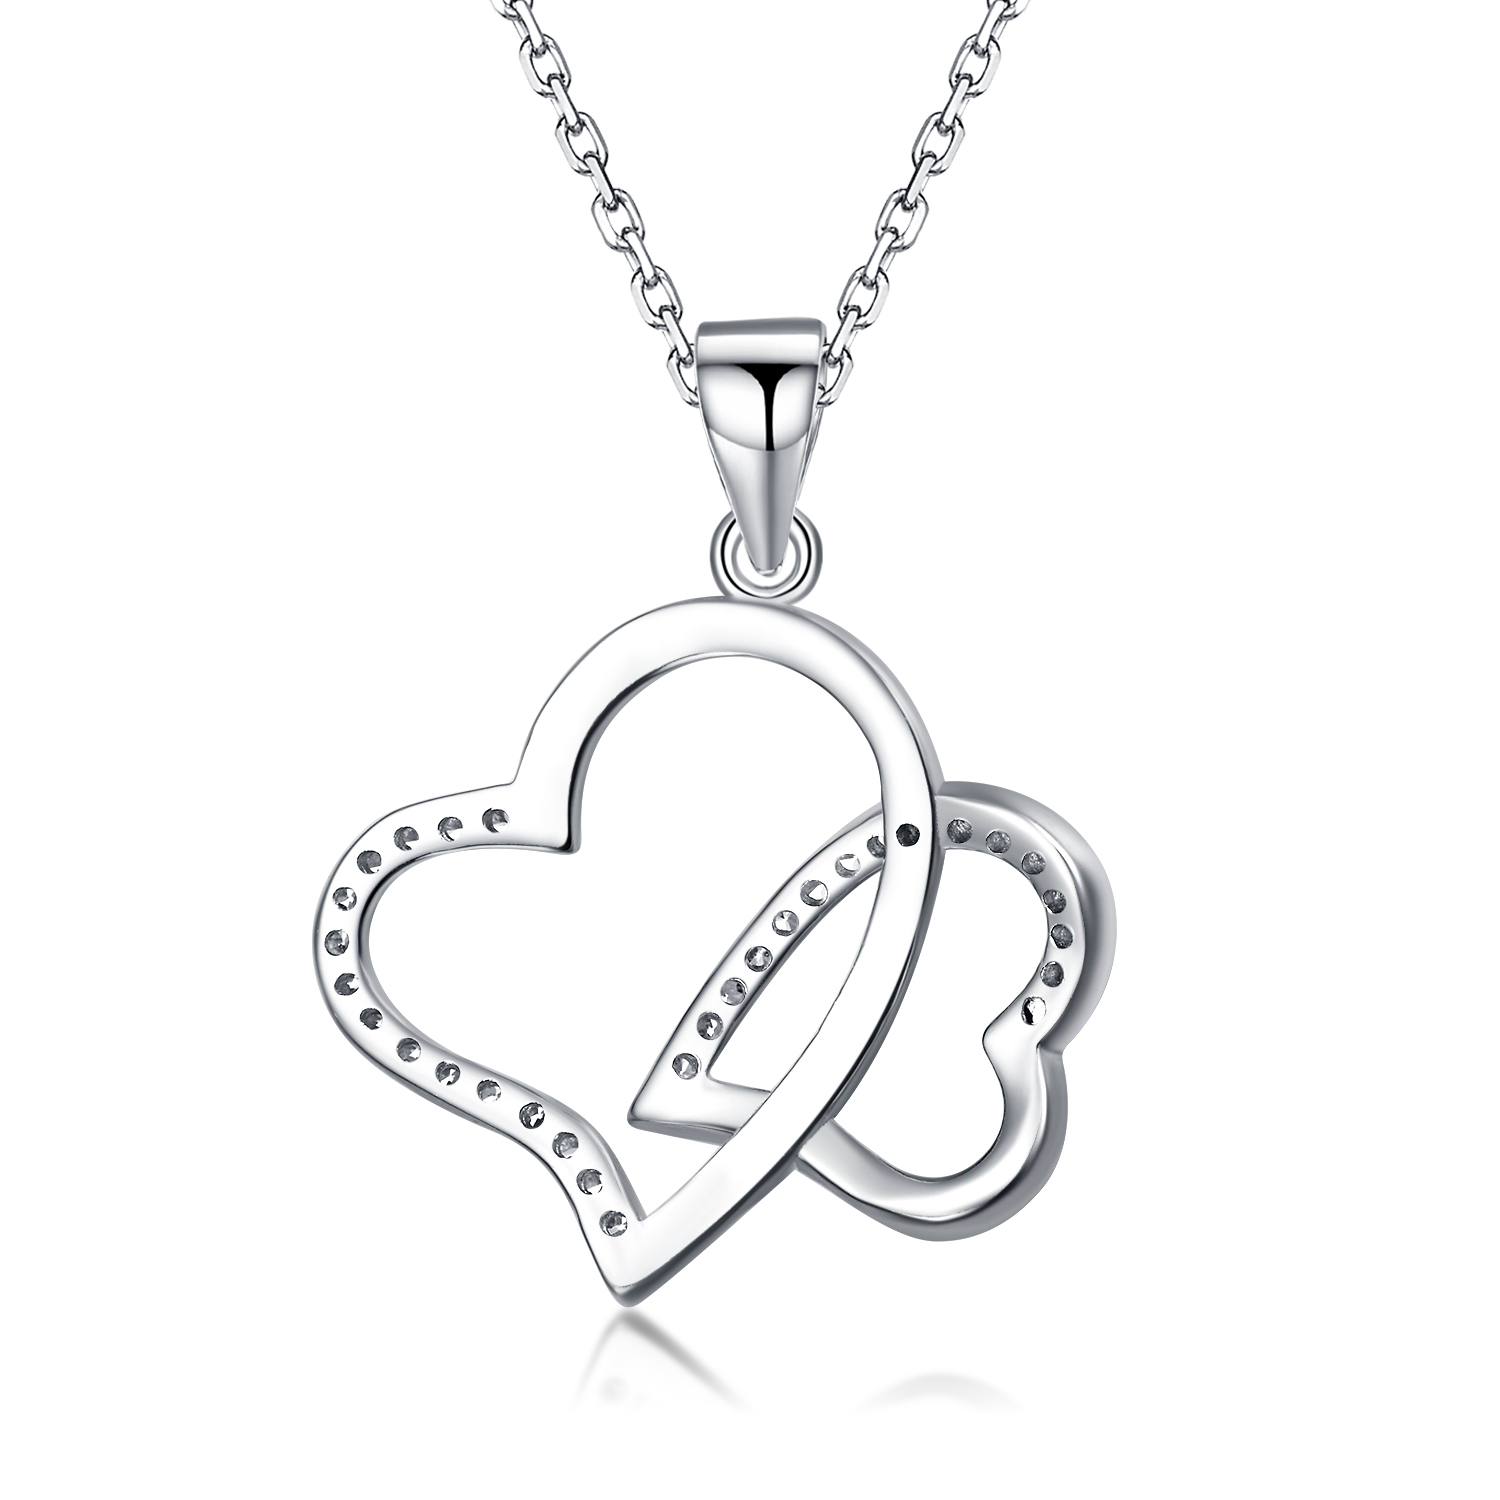 2018 Hot Sales Wholesale Sterling Silver Double Diamond Heart Necklaces